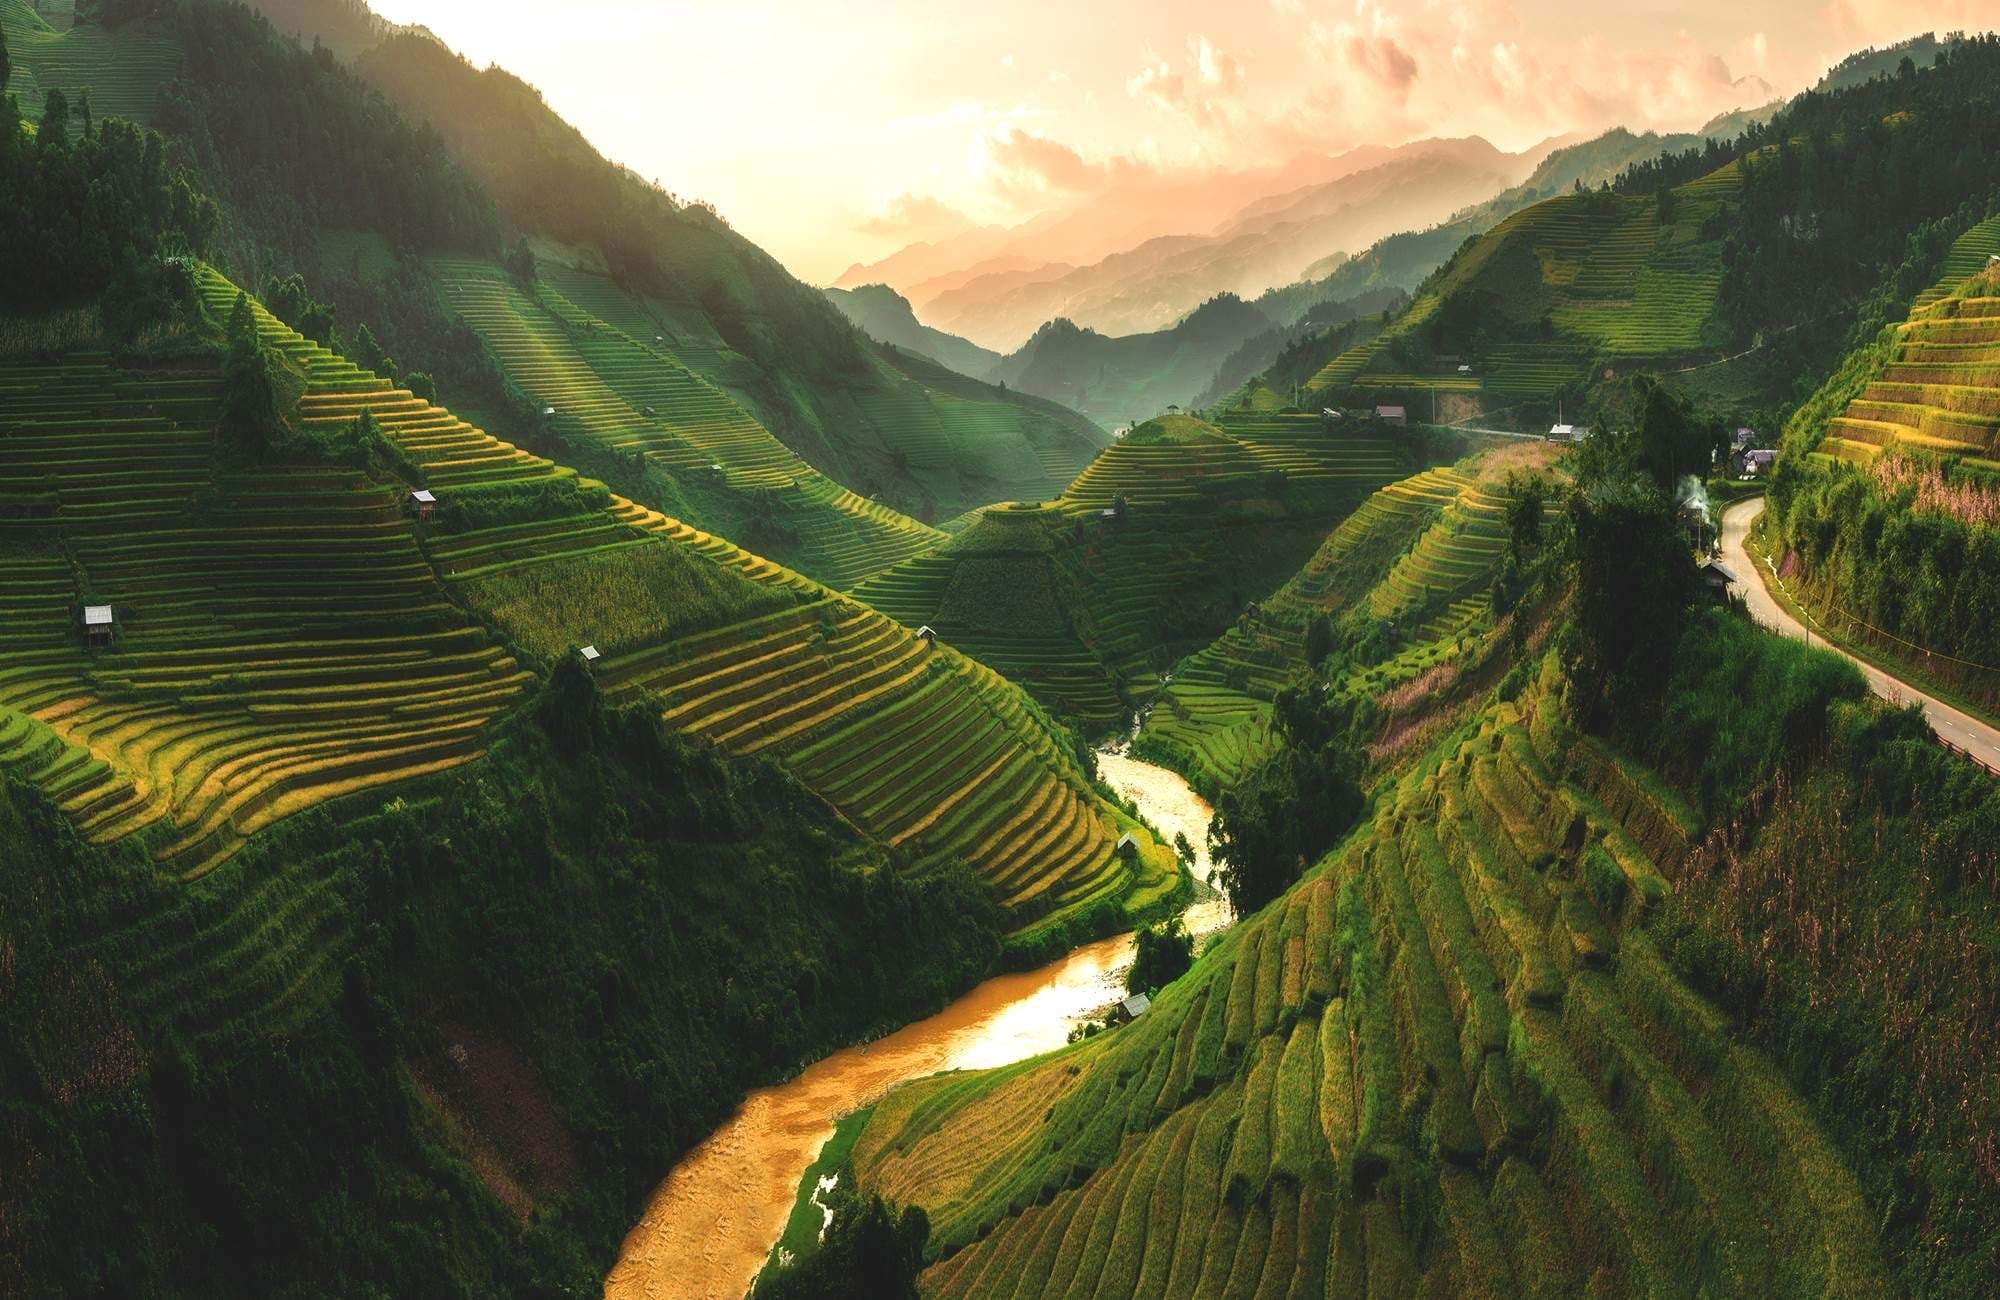 Vietnam in September: Everything You Need to Know